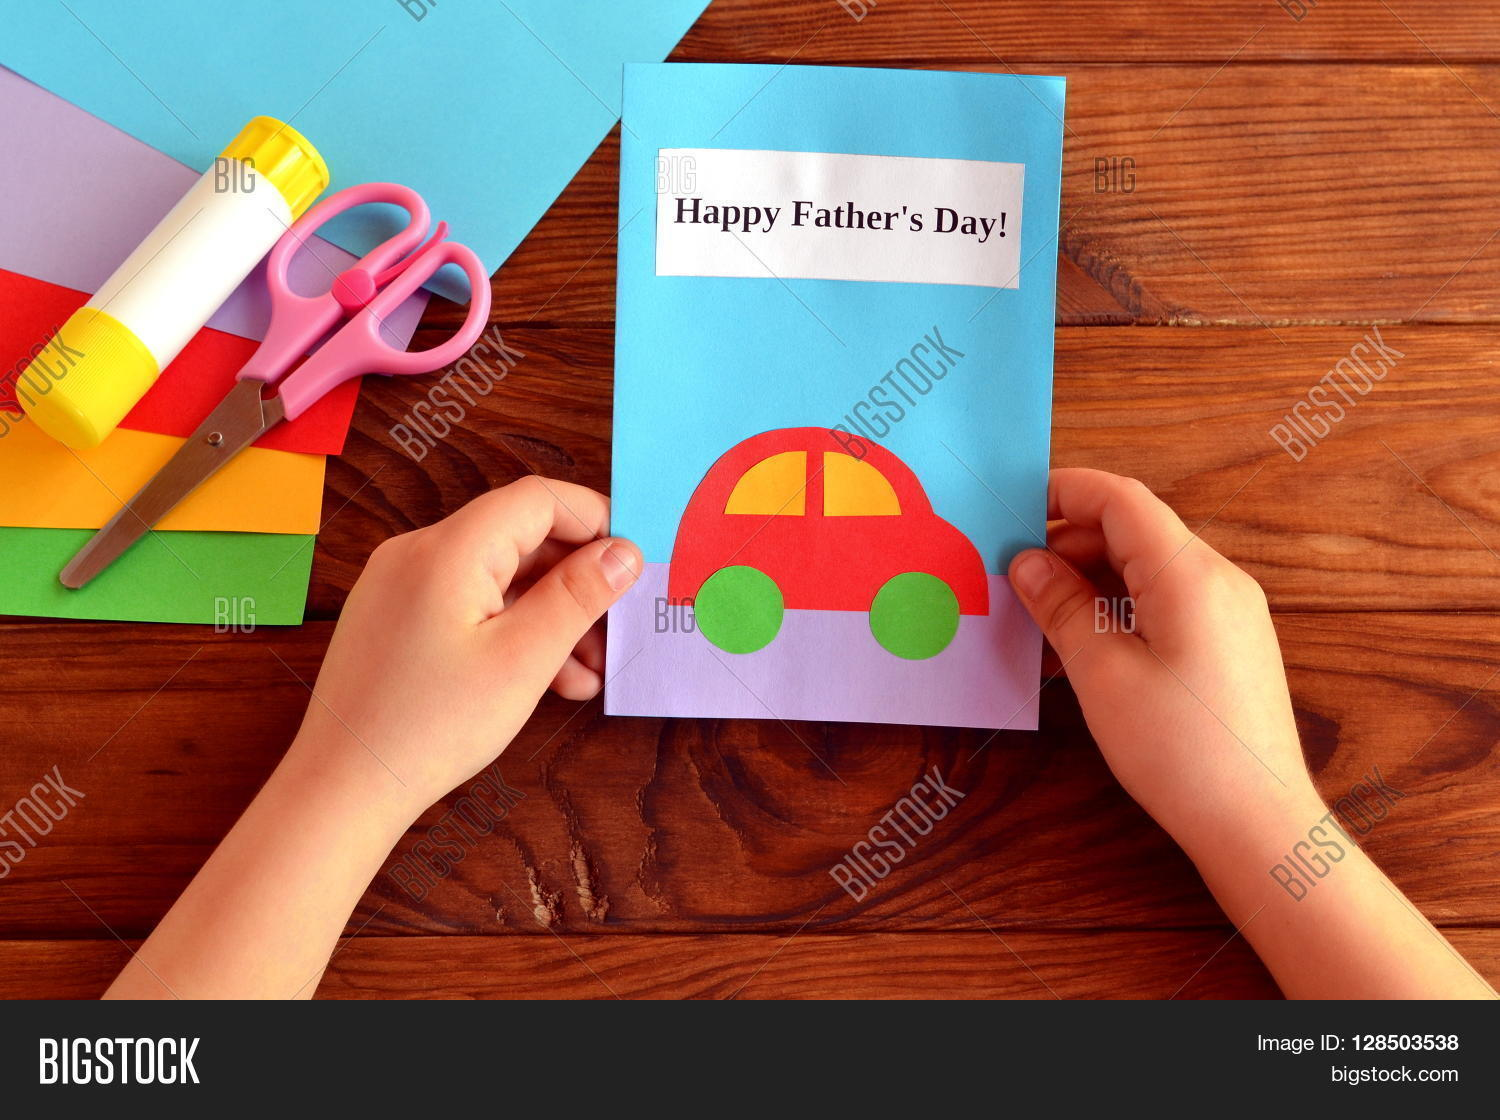 Child Holds Card His Image Photo Free Trial Bigstock